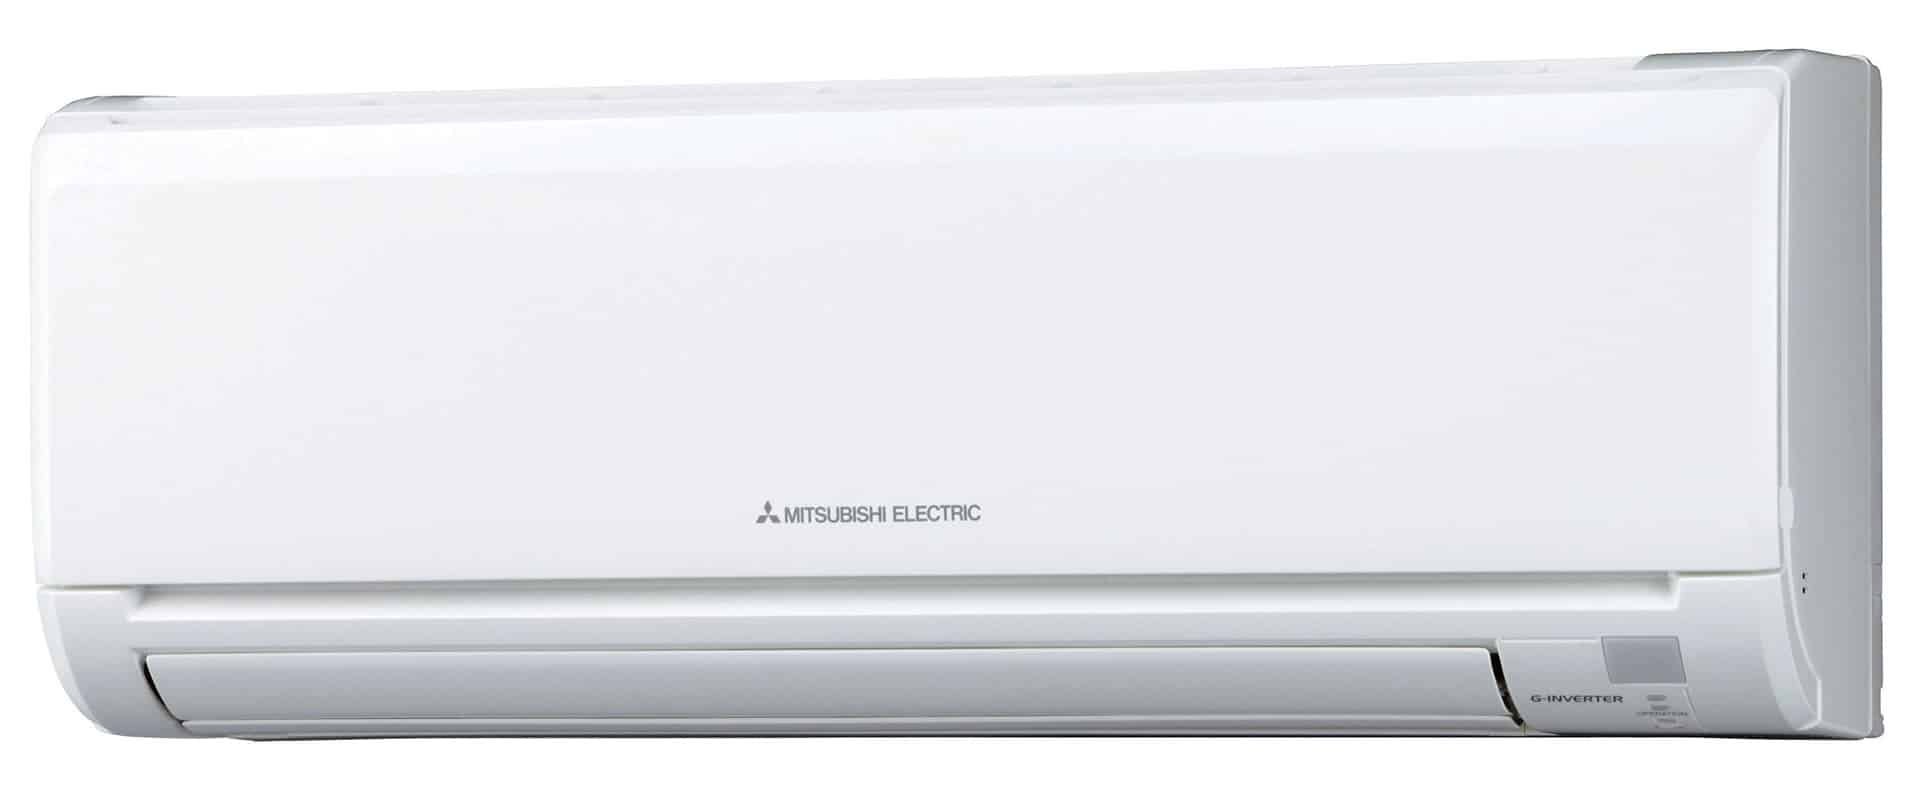 air split system mitsubishi inverter home cycle conditioning product msz conditioners reverse head